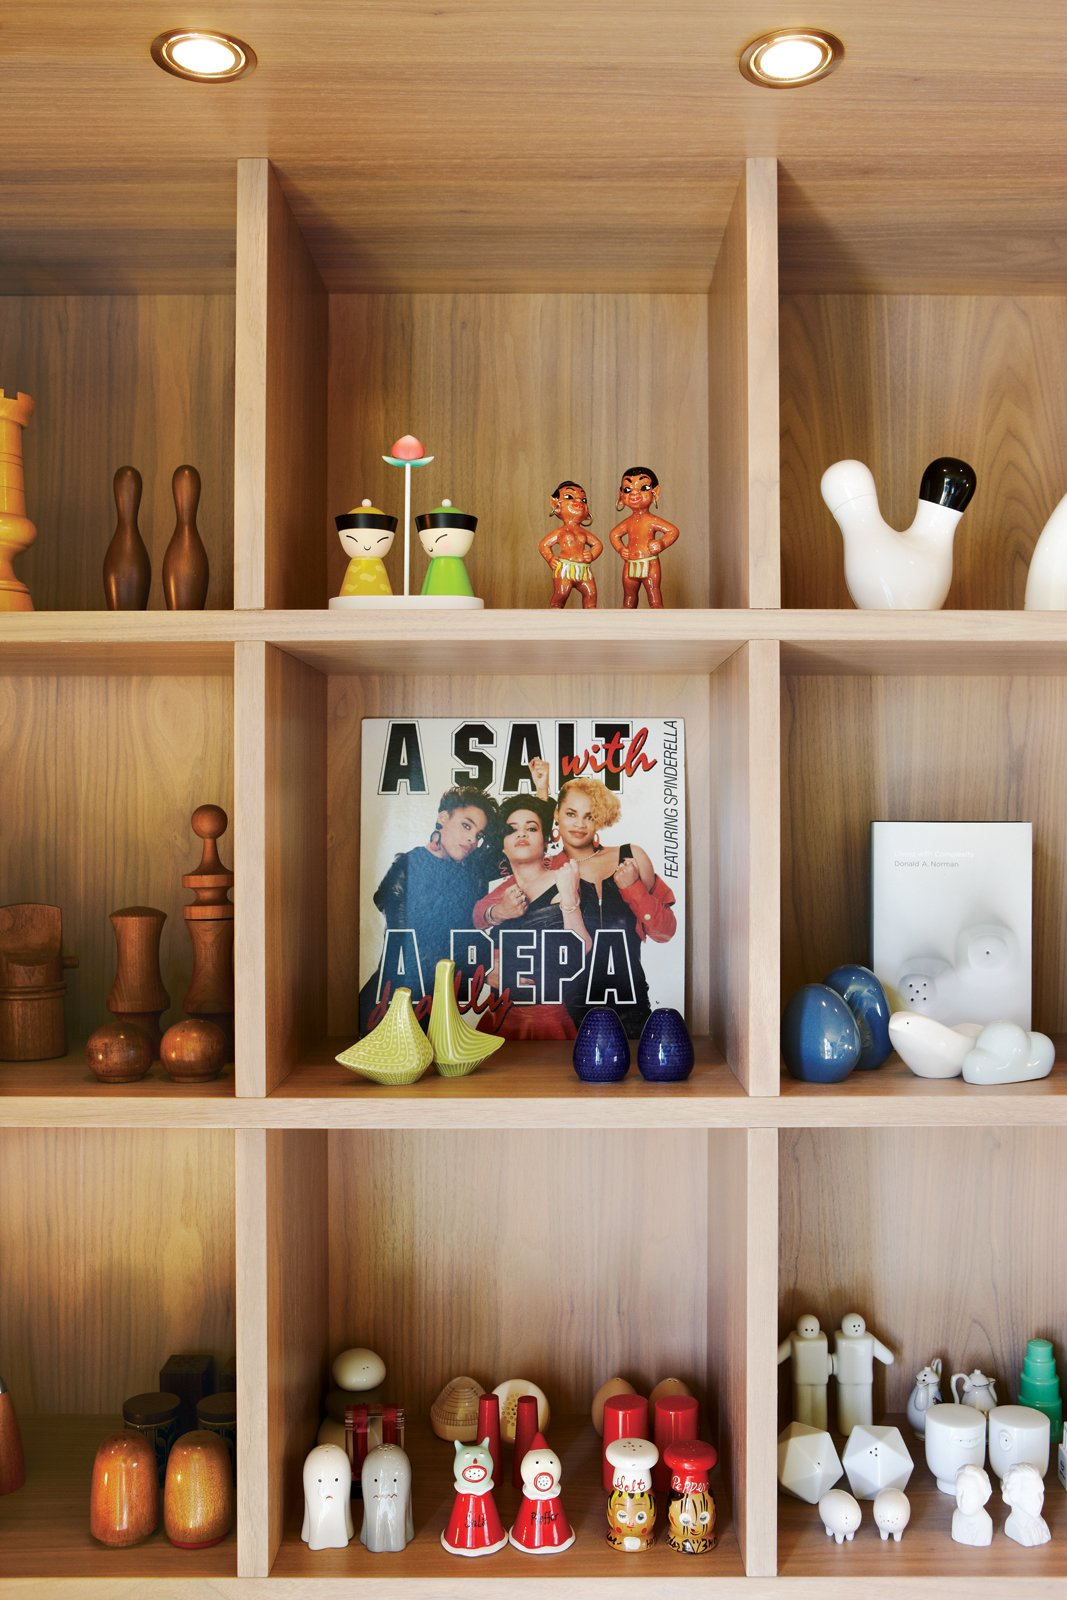 Montague arranges his objects with a sense of humor. Custom shelves display his collection of salt and pepper shakers.